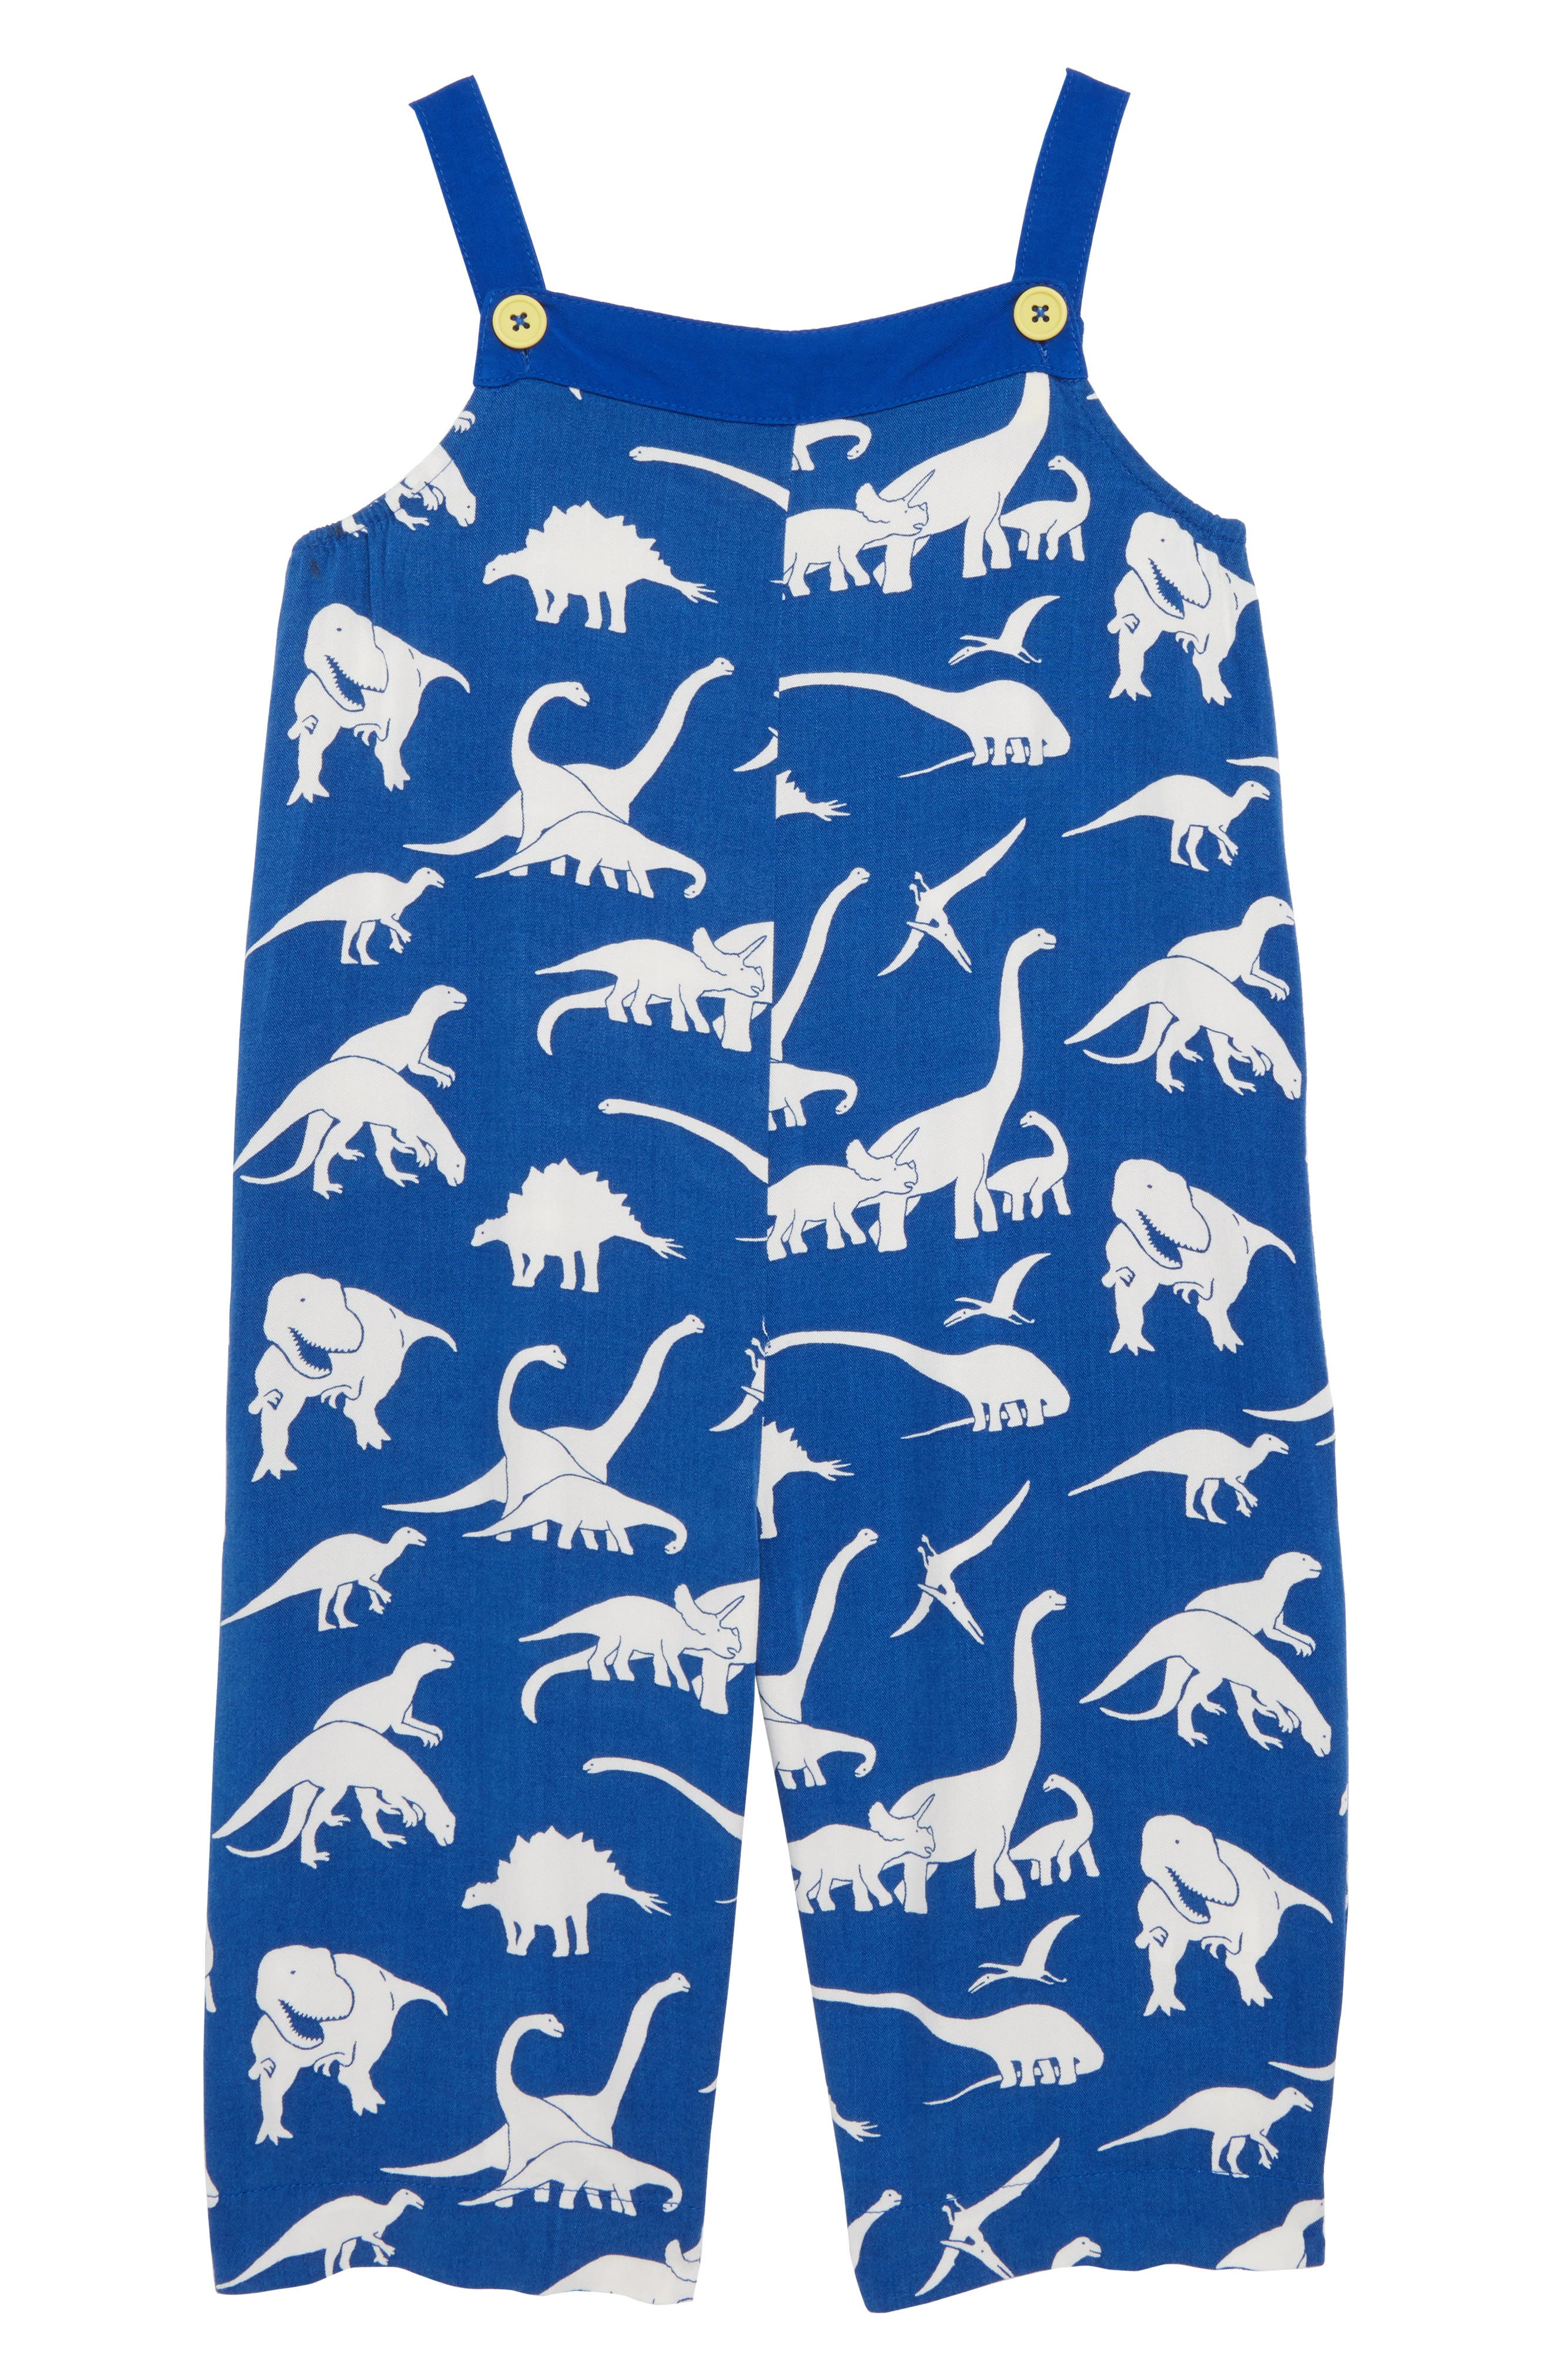 Print Culotte Romper,                             Main thumbnail 1, color,                             Orion Blue Roarsome Friends